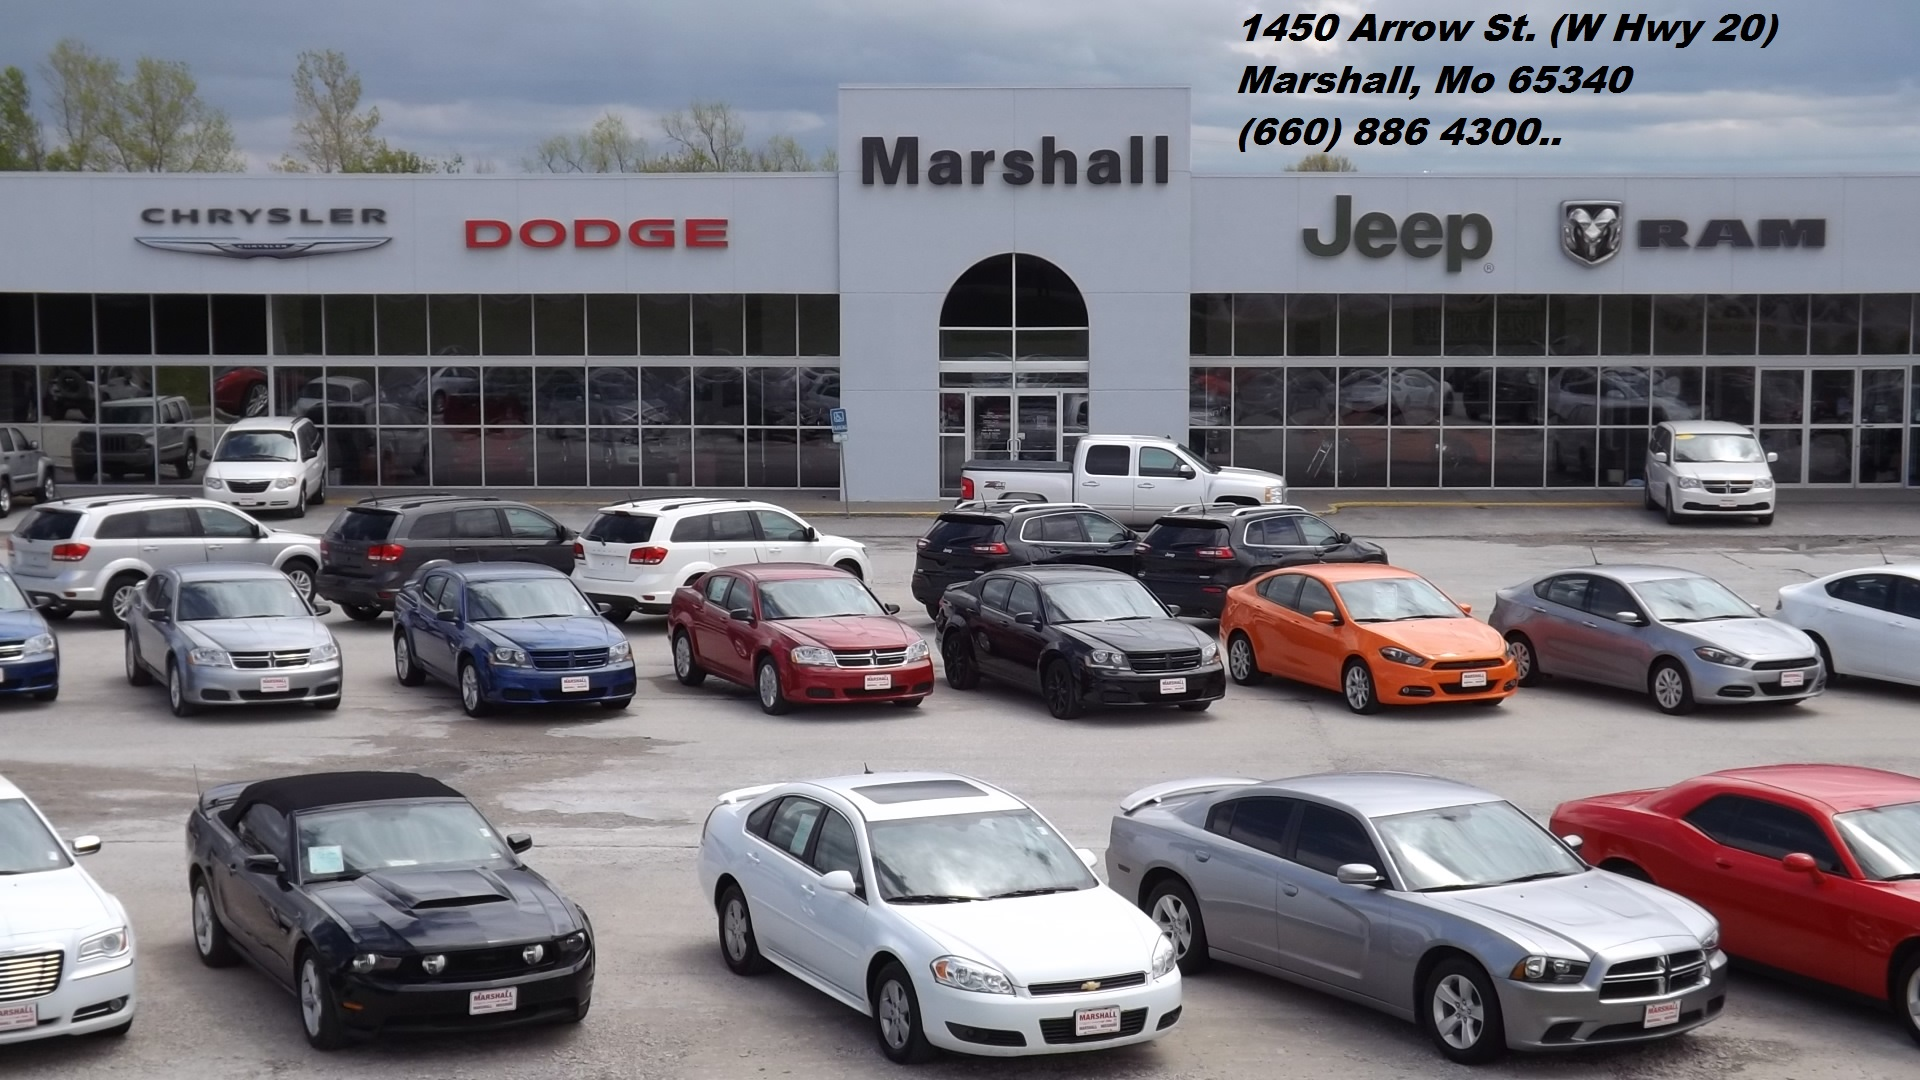 Marshall Chrysler Jeep Dodge LLC